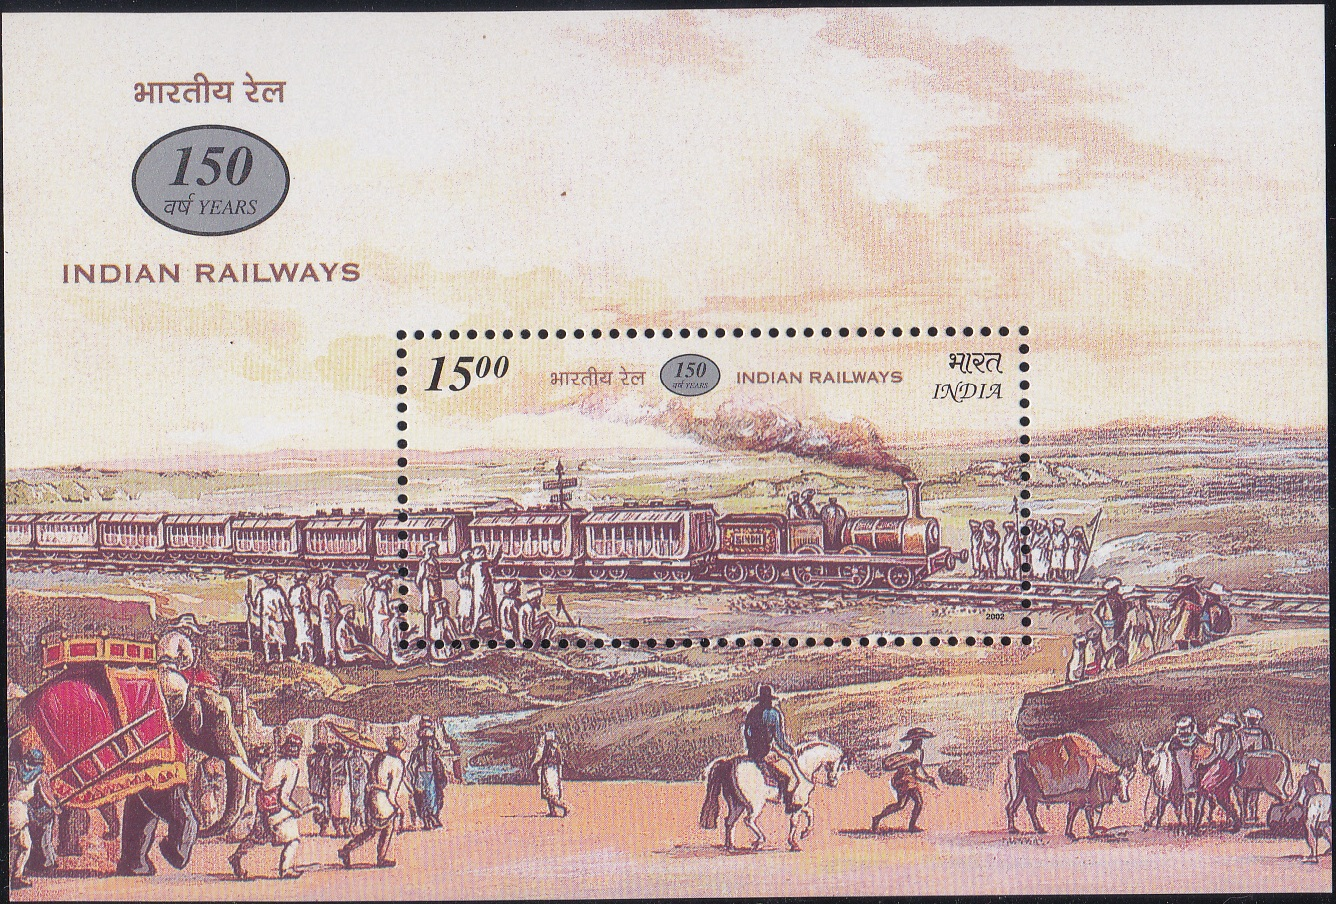 First Train from Bori Bunder to Thane on 16 April 1853